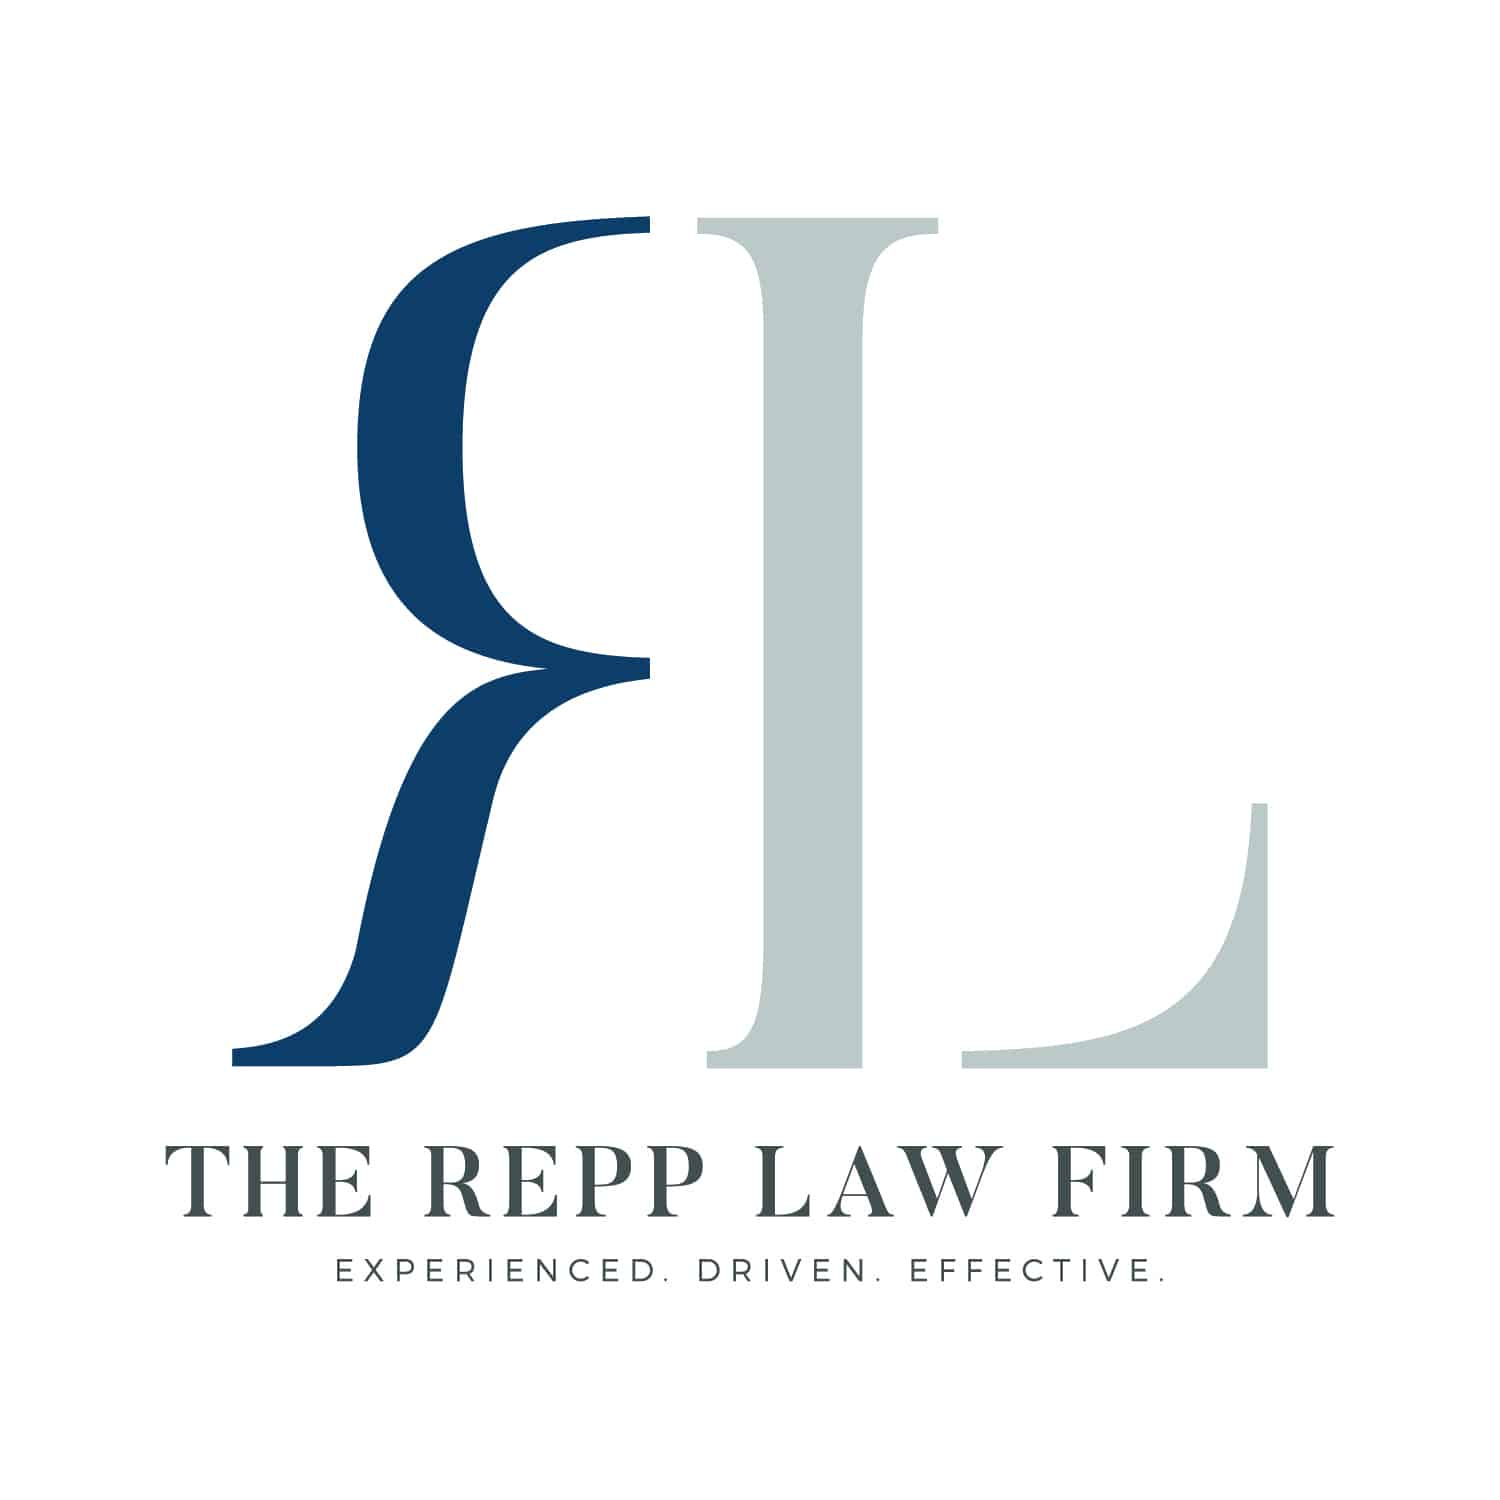 The Repp Law Firm